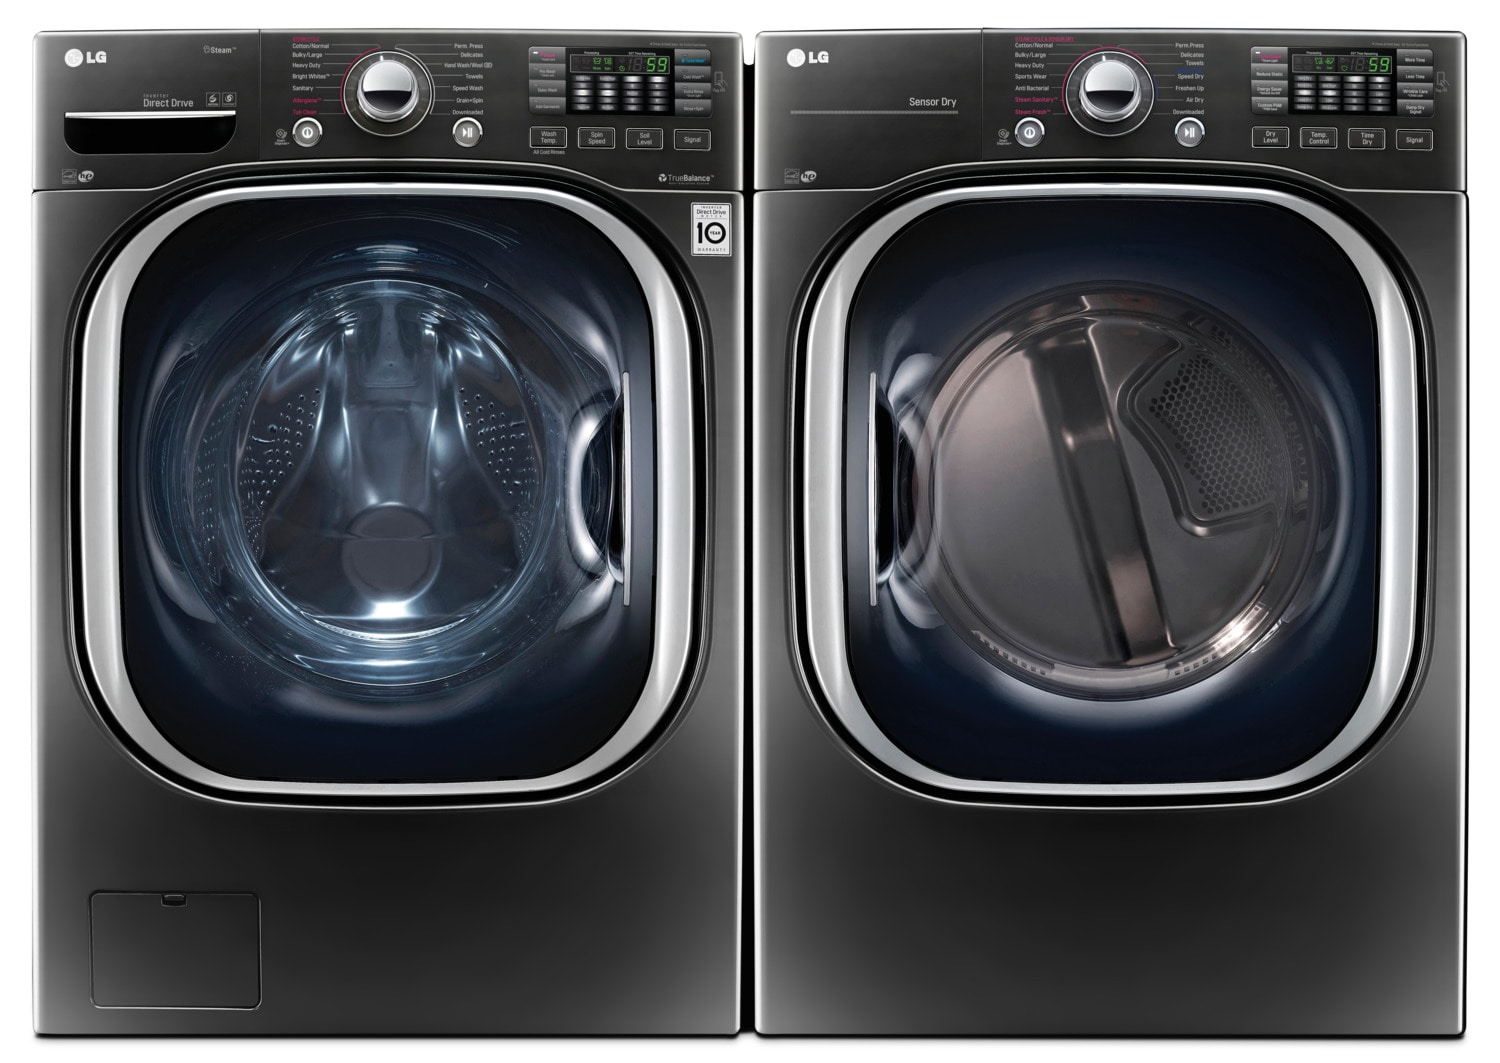 LG 5.2 Cu. Ft. Front-Load Washer and 7.4 Cu. Ft. Electric Dryer with TurboSteam™